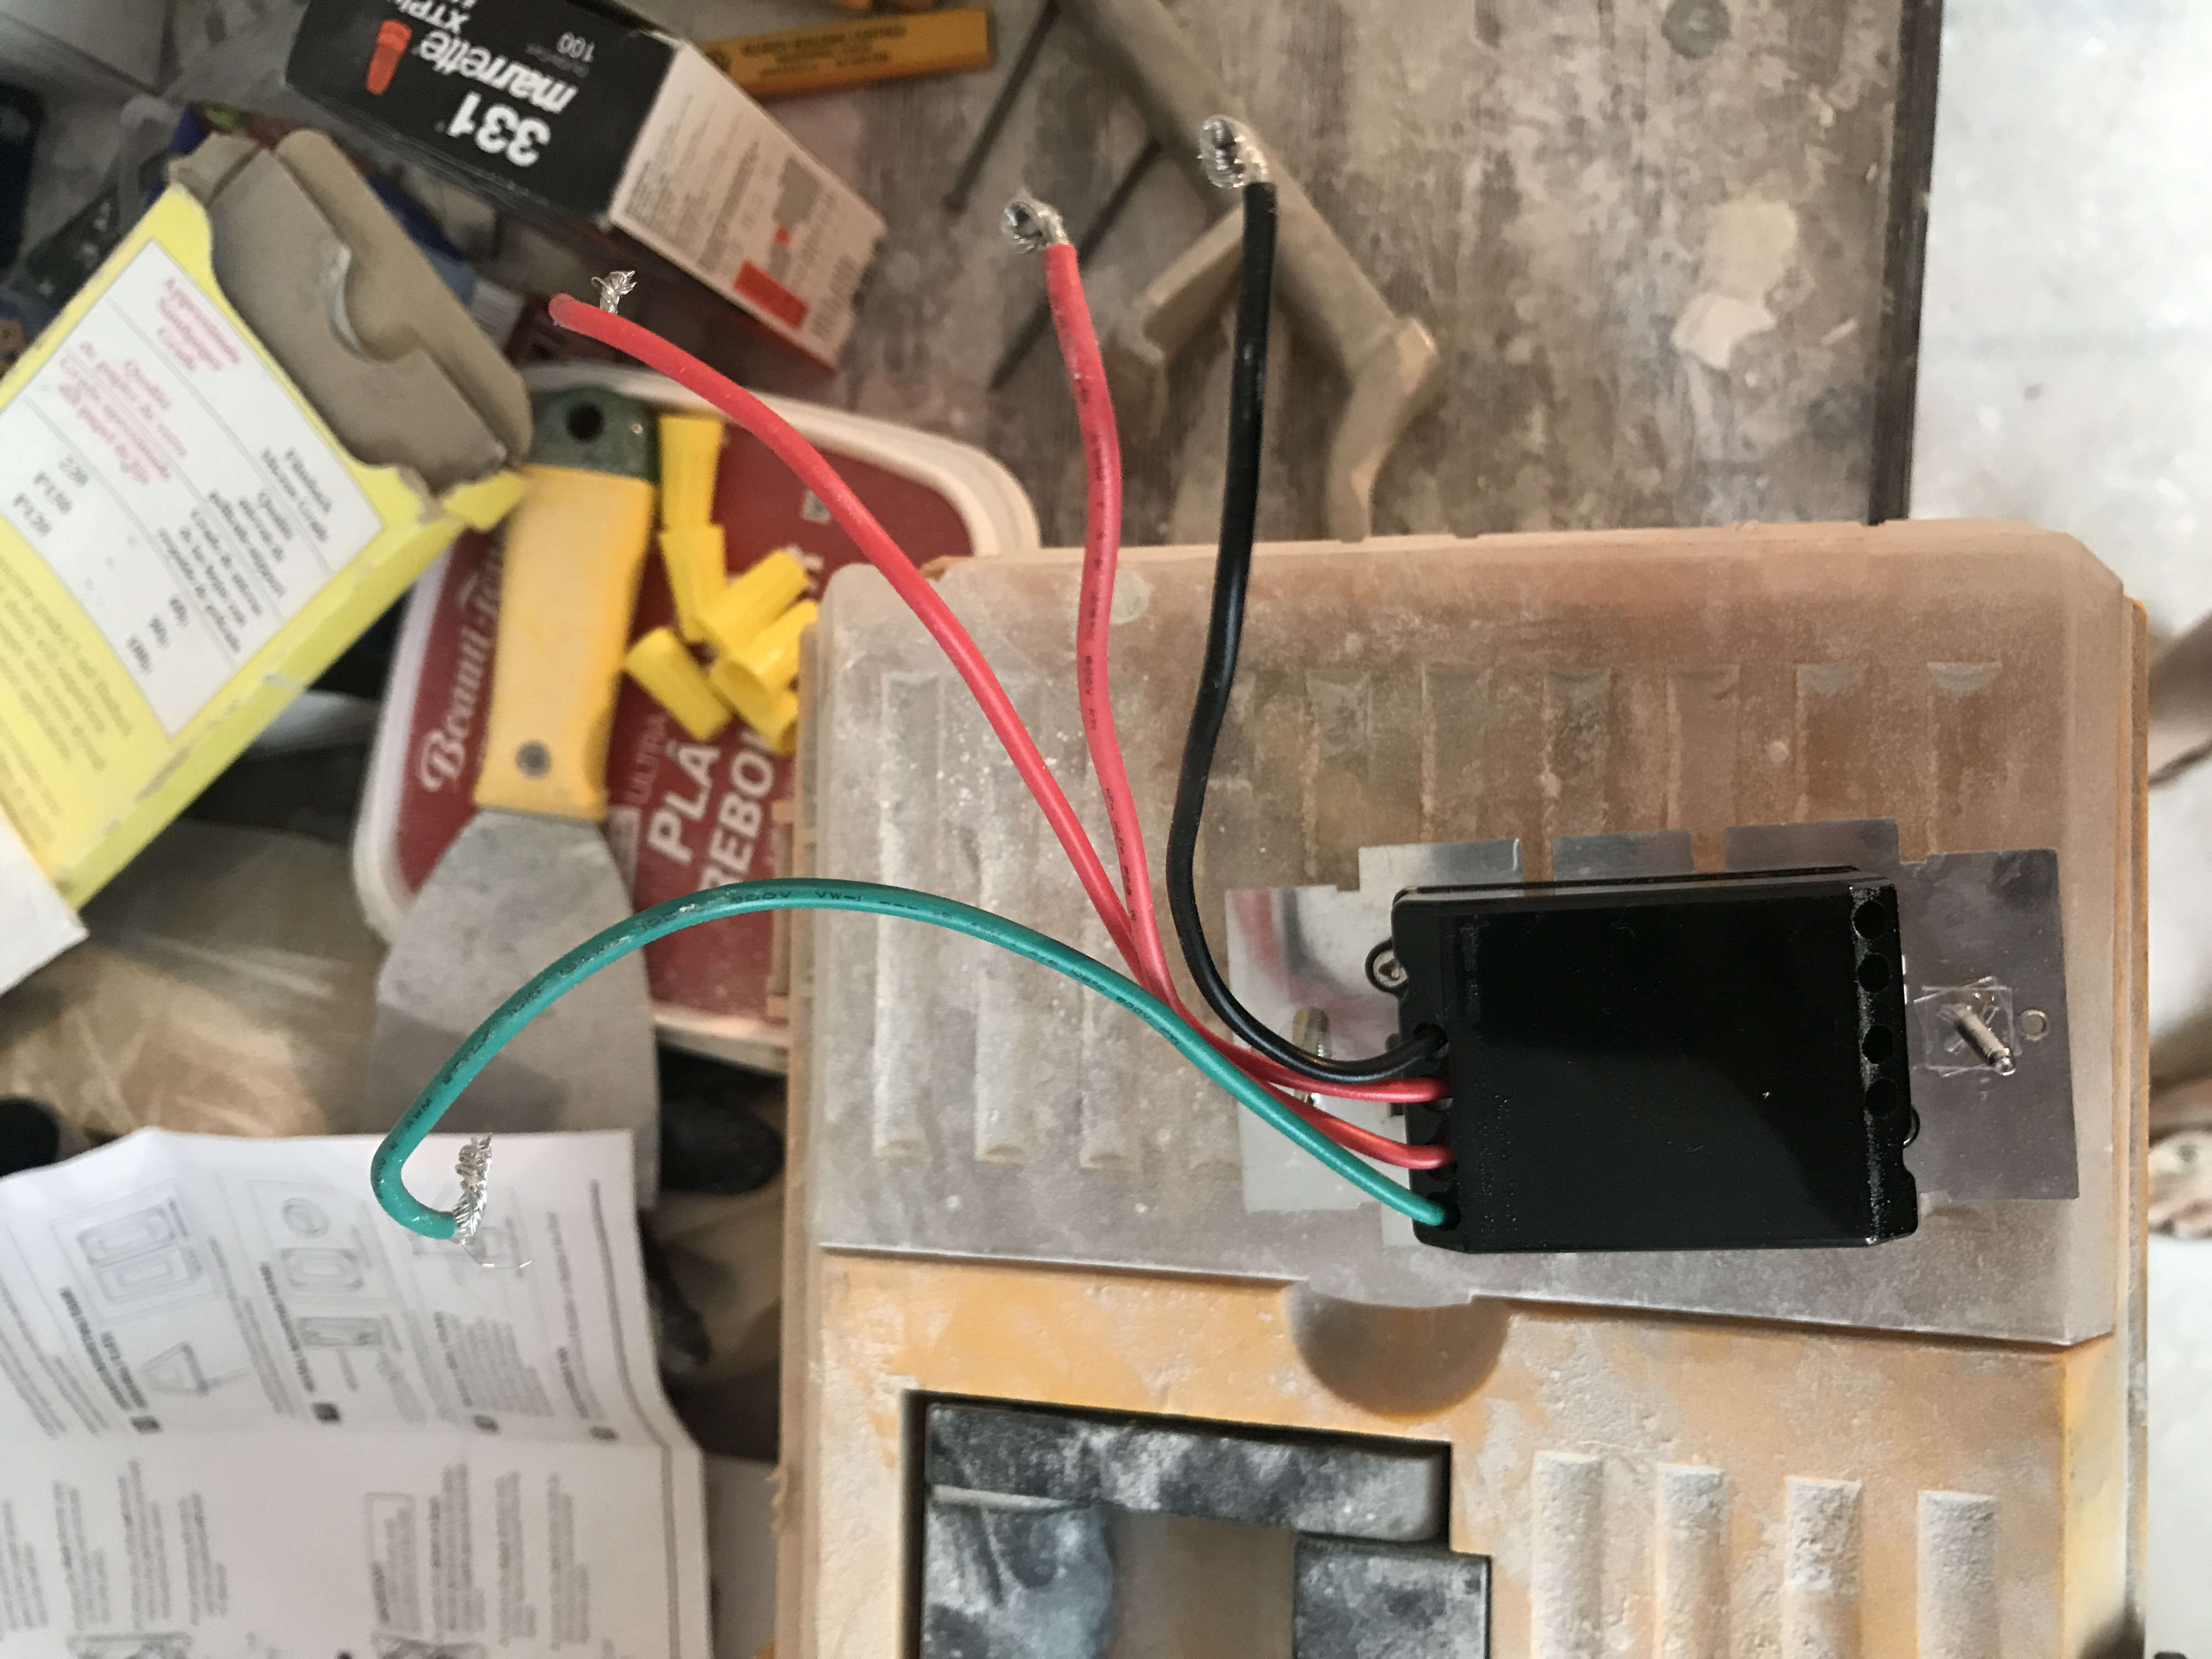 I need help on installing feit electricity 3-way dimmer ... Feit Dimmer Single Pole Switch Wiring Diagram on